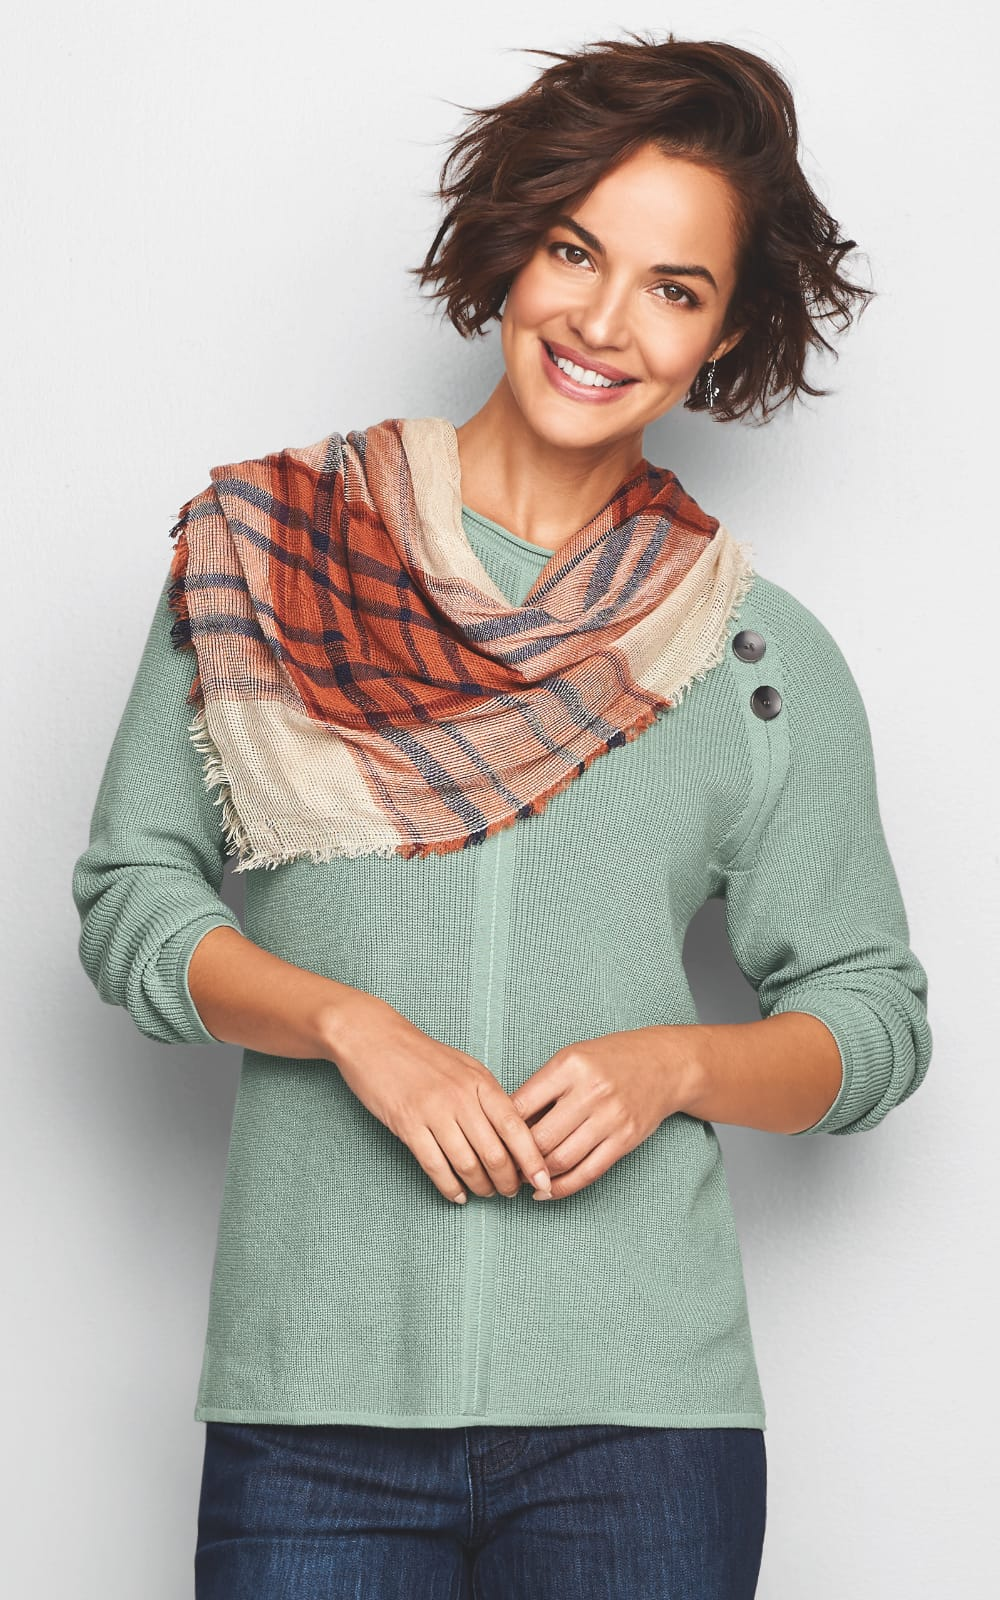 The Apple Orchard Outfit (combining the Reglan Sleeve Button Shoulder Pullover Sweater, the Fall Plaid Scarf, the Everyday Straight Jean, and the Tiger's Eye Drop Earring).